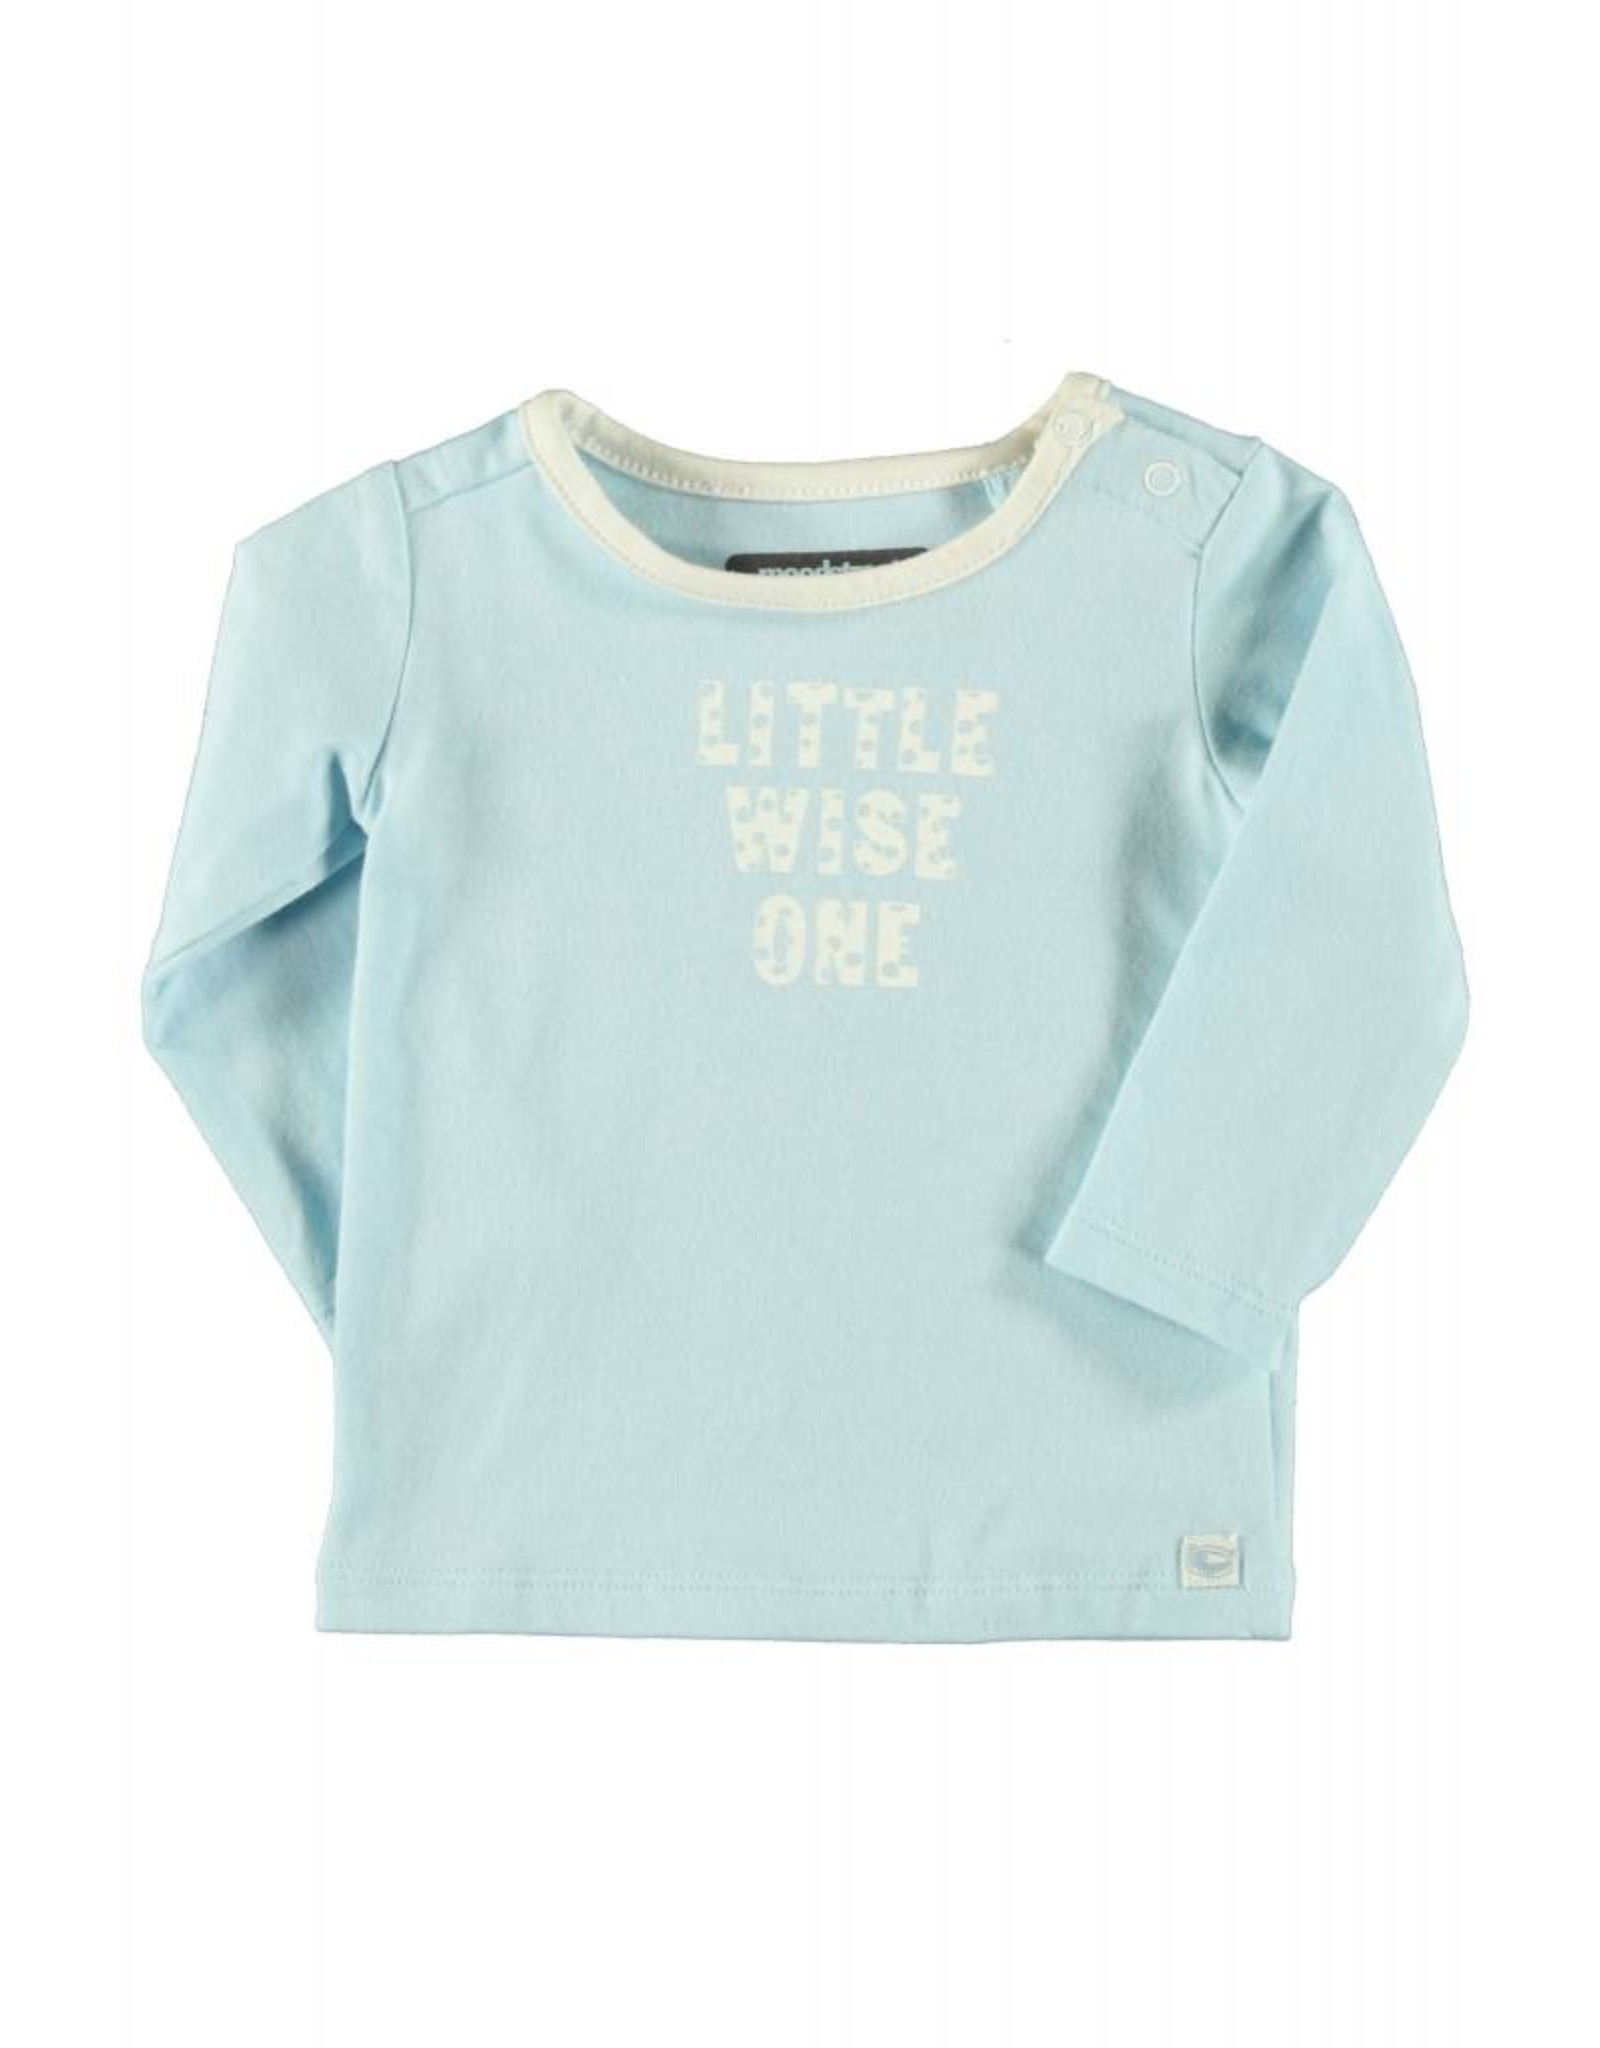 Moodstreet Longsleeve little wise one 125 light blue 68